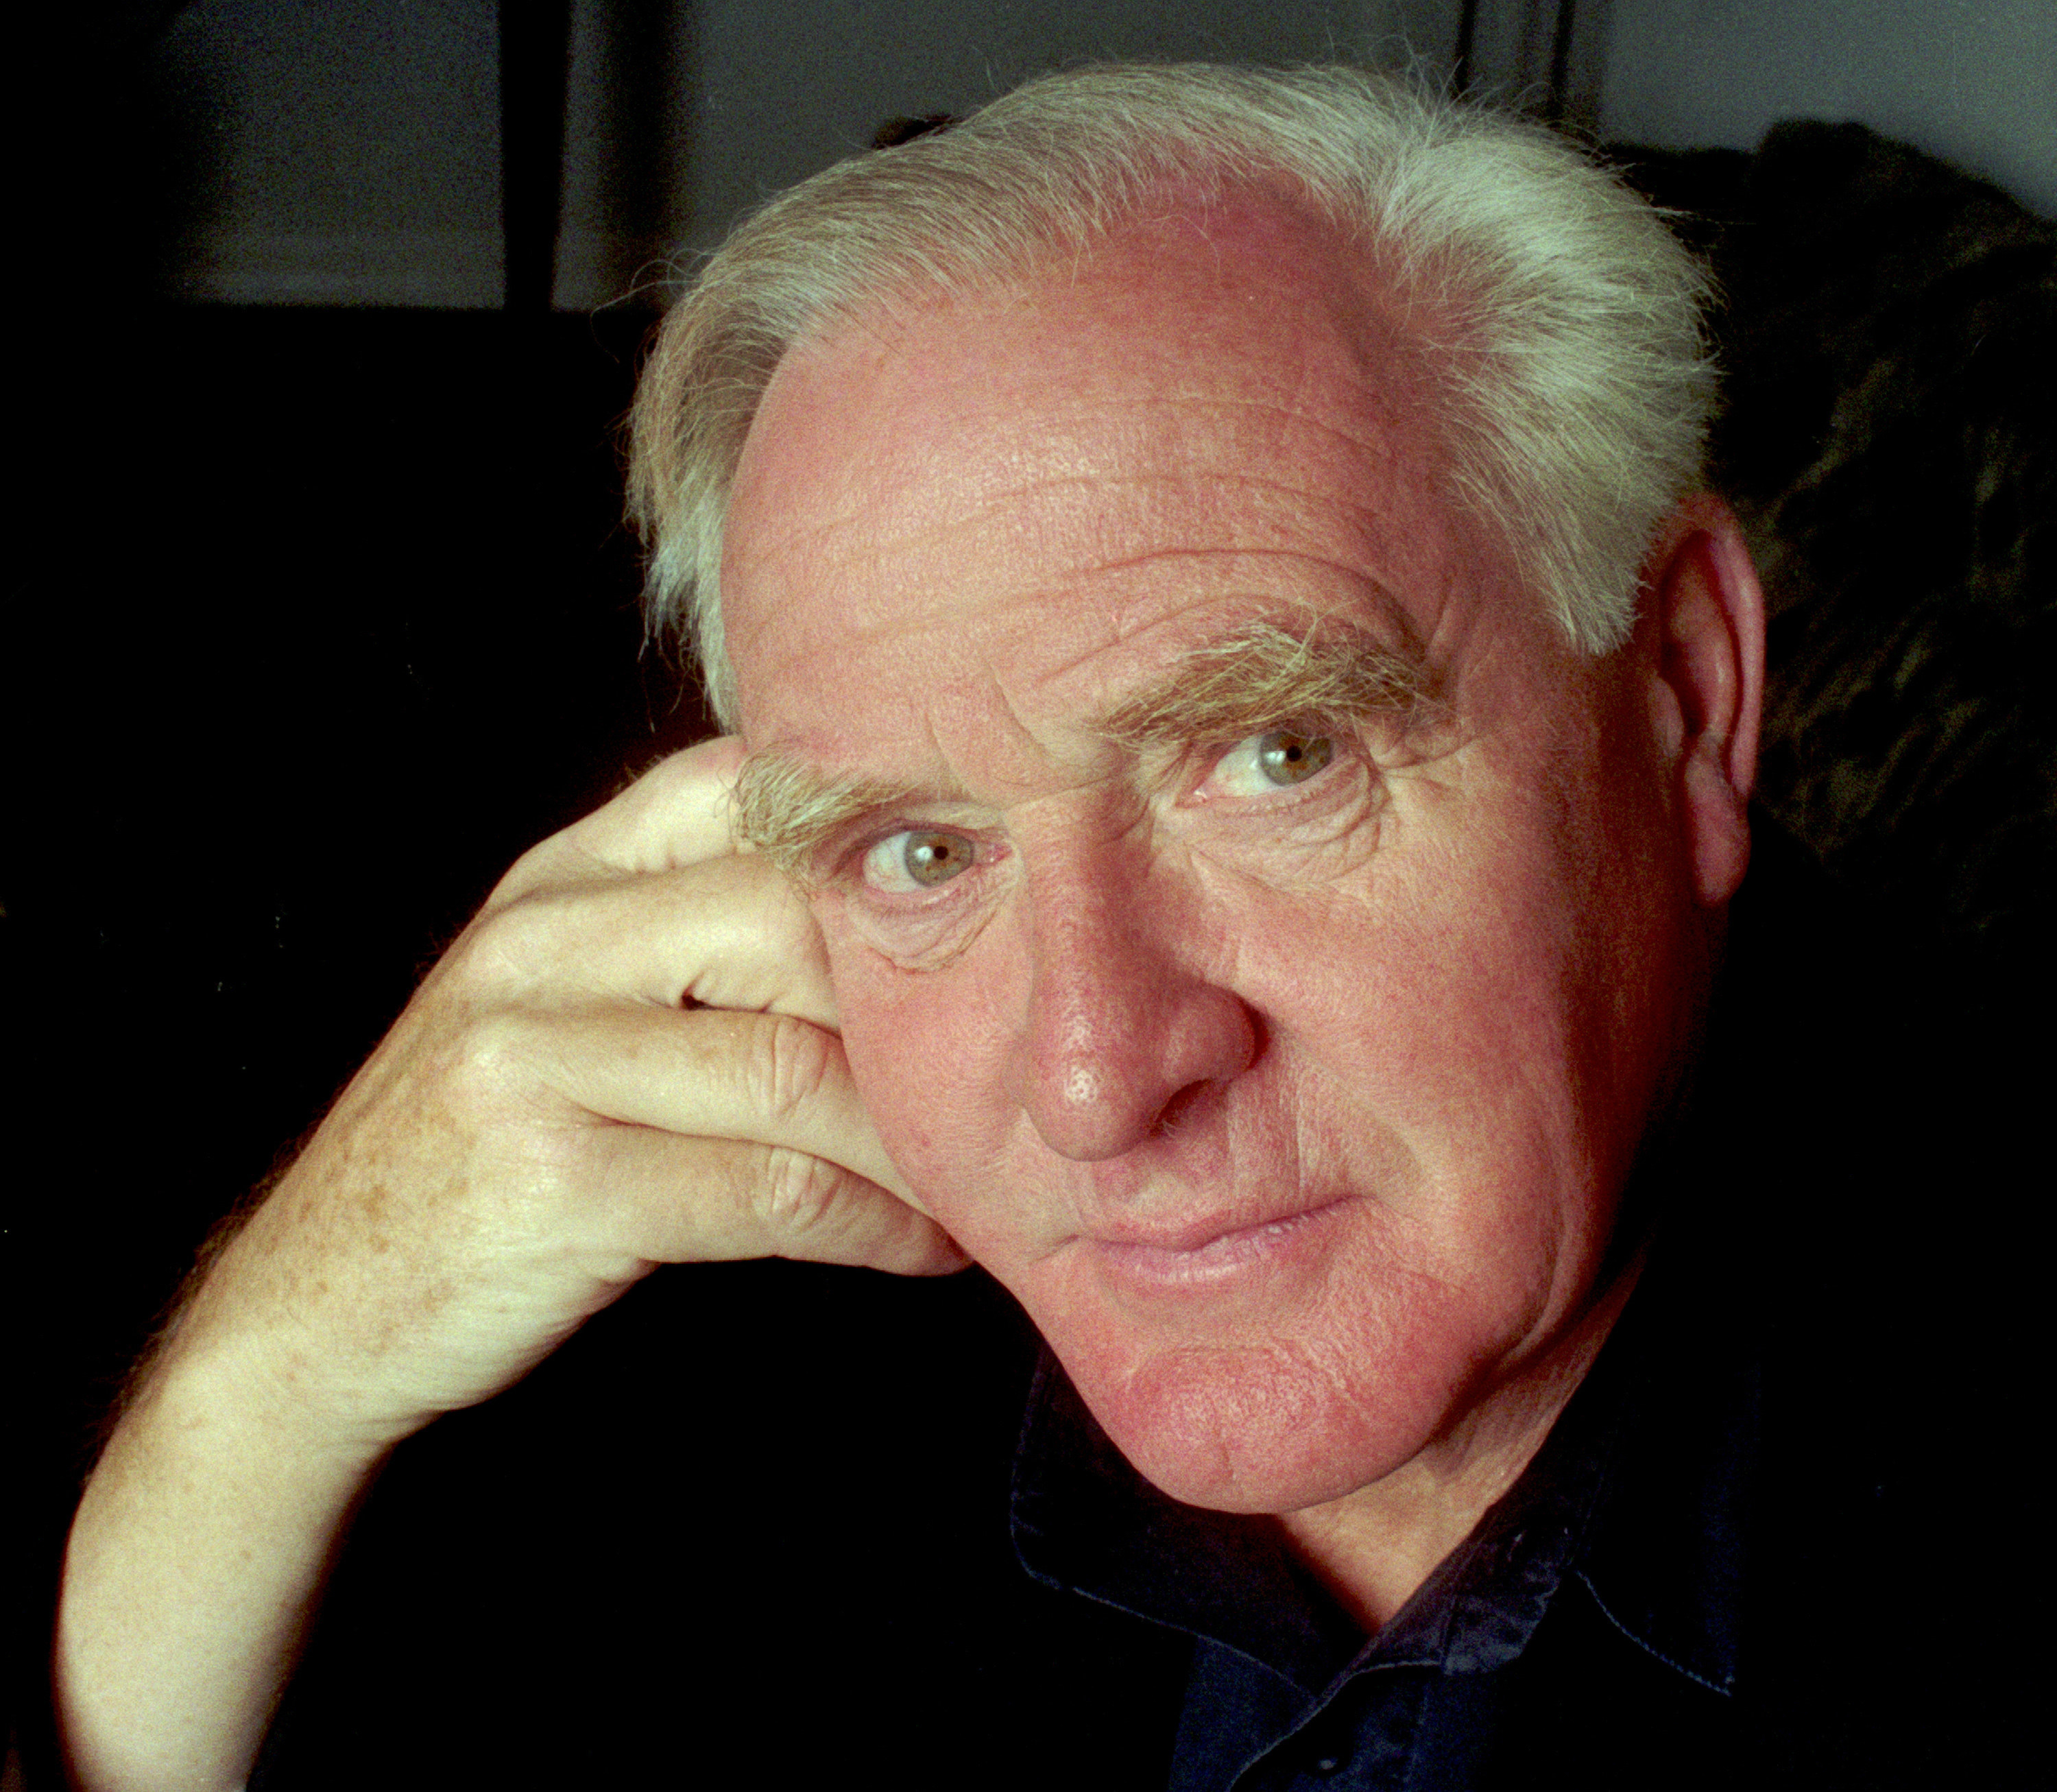 Le Carré, an older man with white hair, posing for the camera